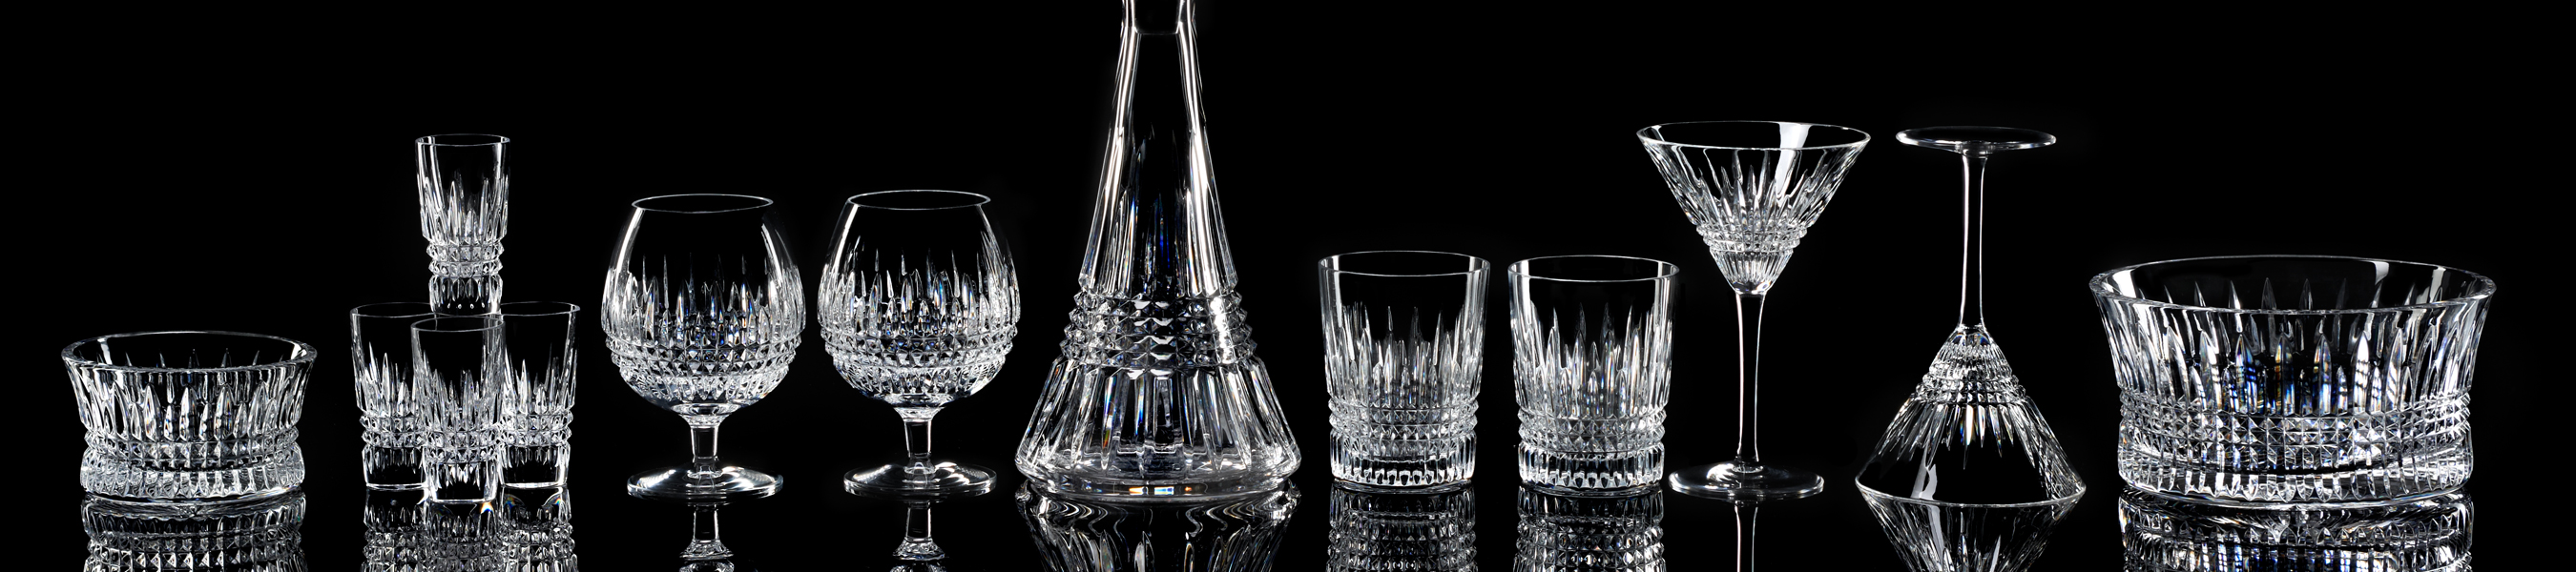 Dazzling waterford lismore with lismore goblet design glass waterford lismore